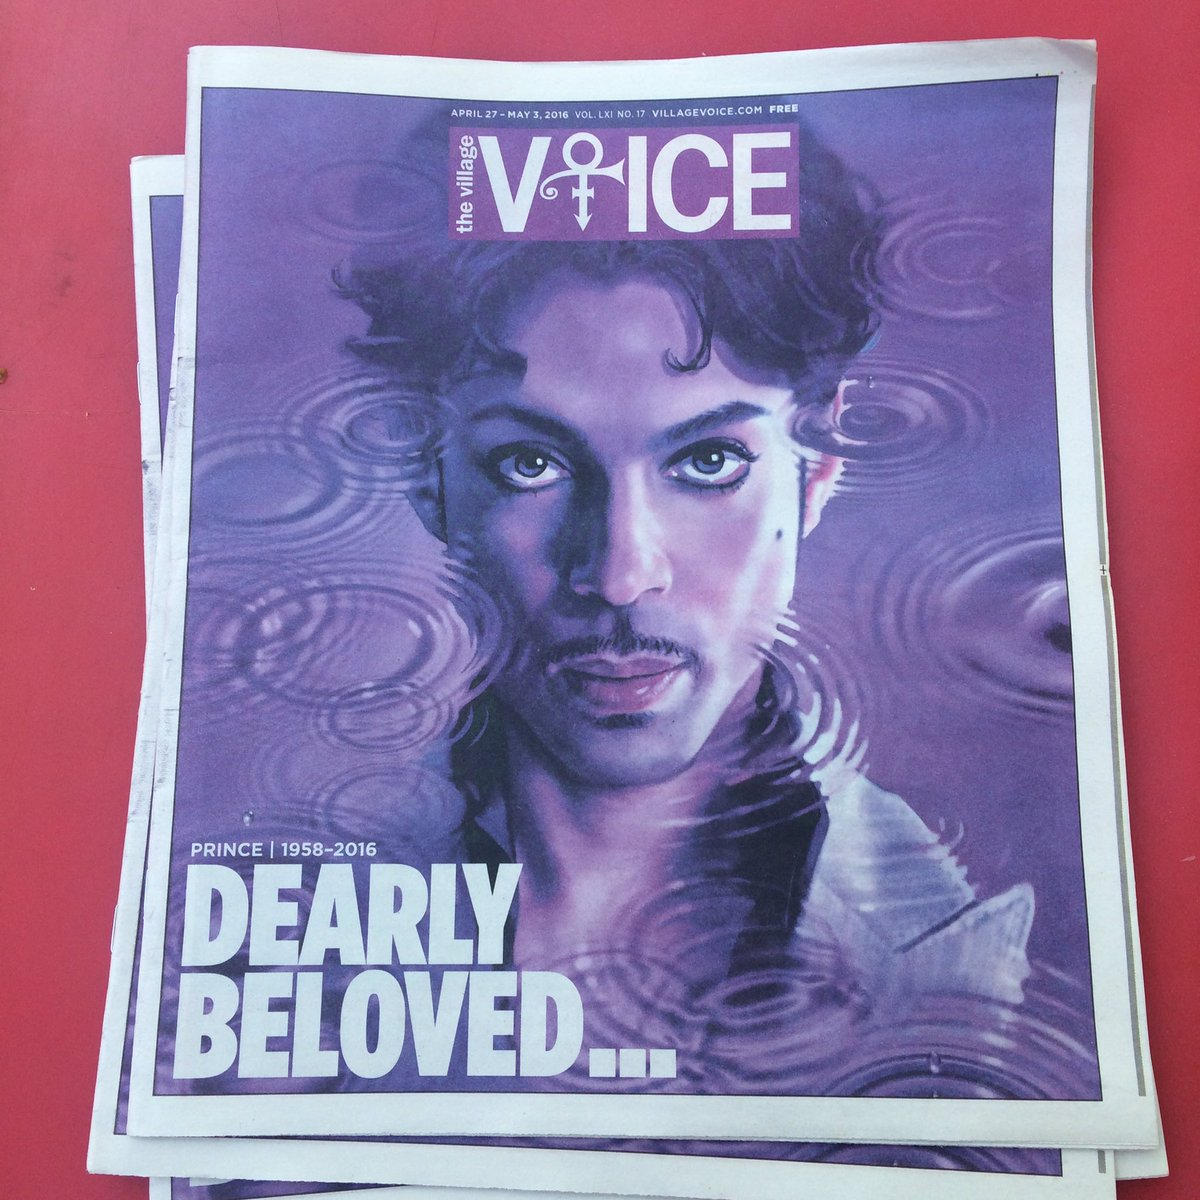 ...we are gathered here today.... #Prince via @villagevoice https://t.co/FL8nf9246U